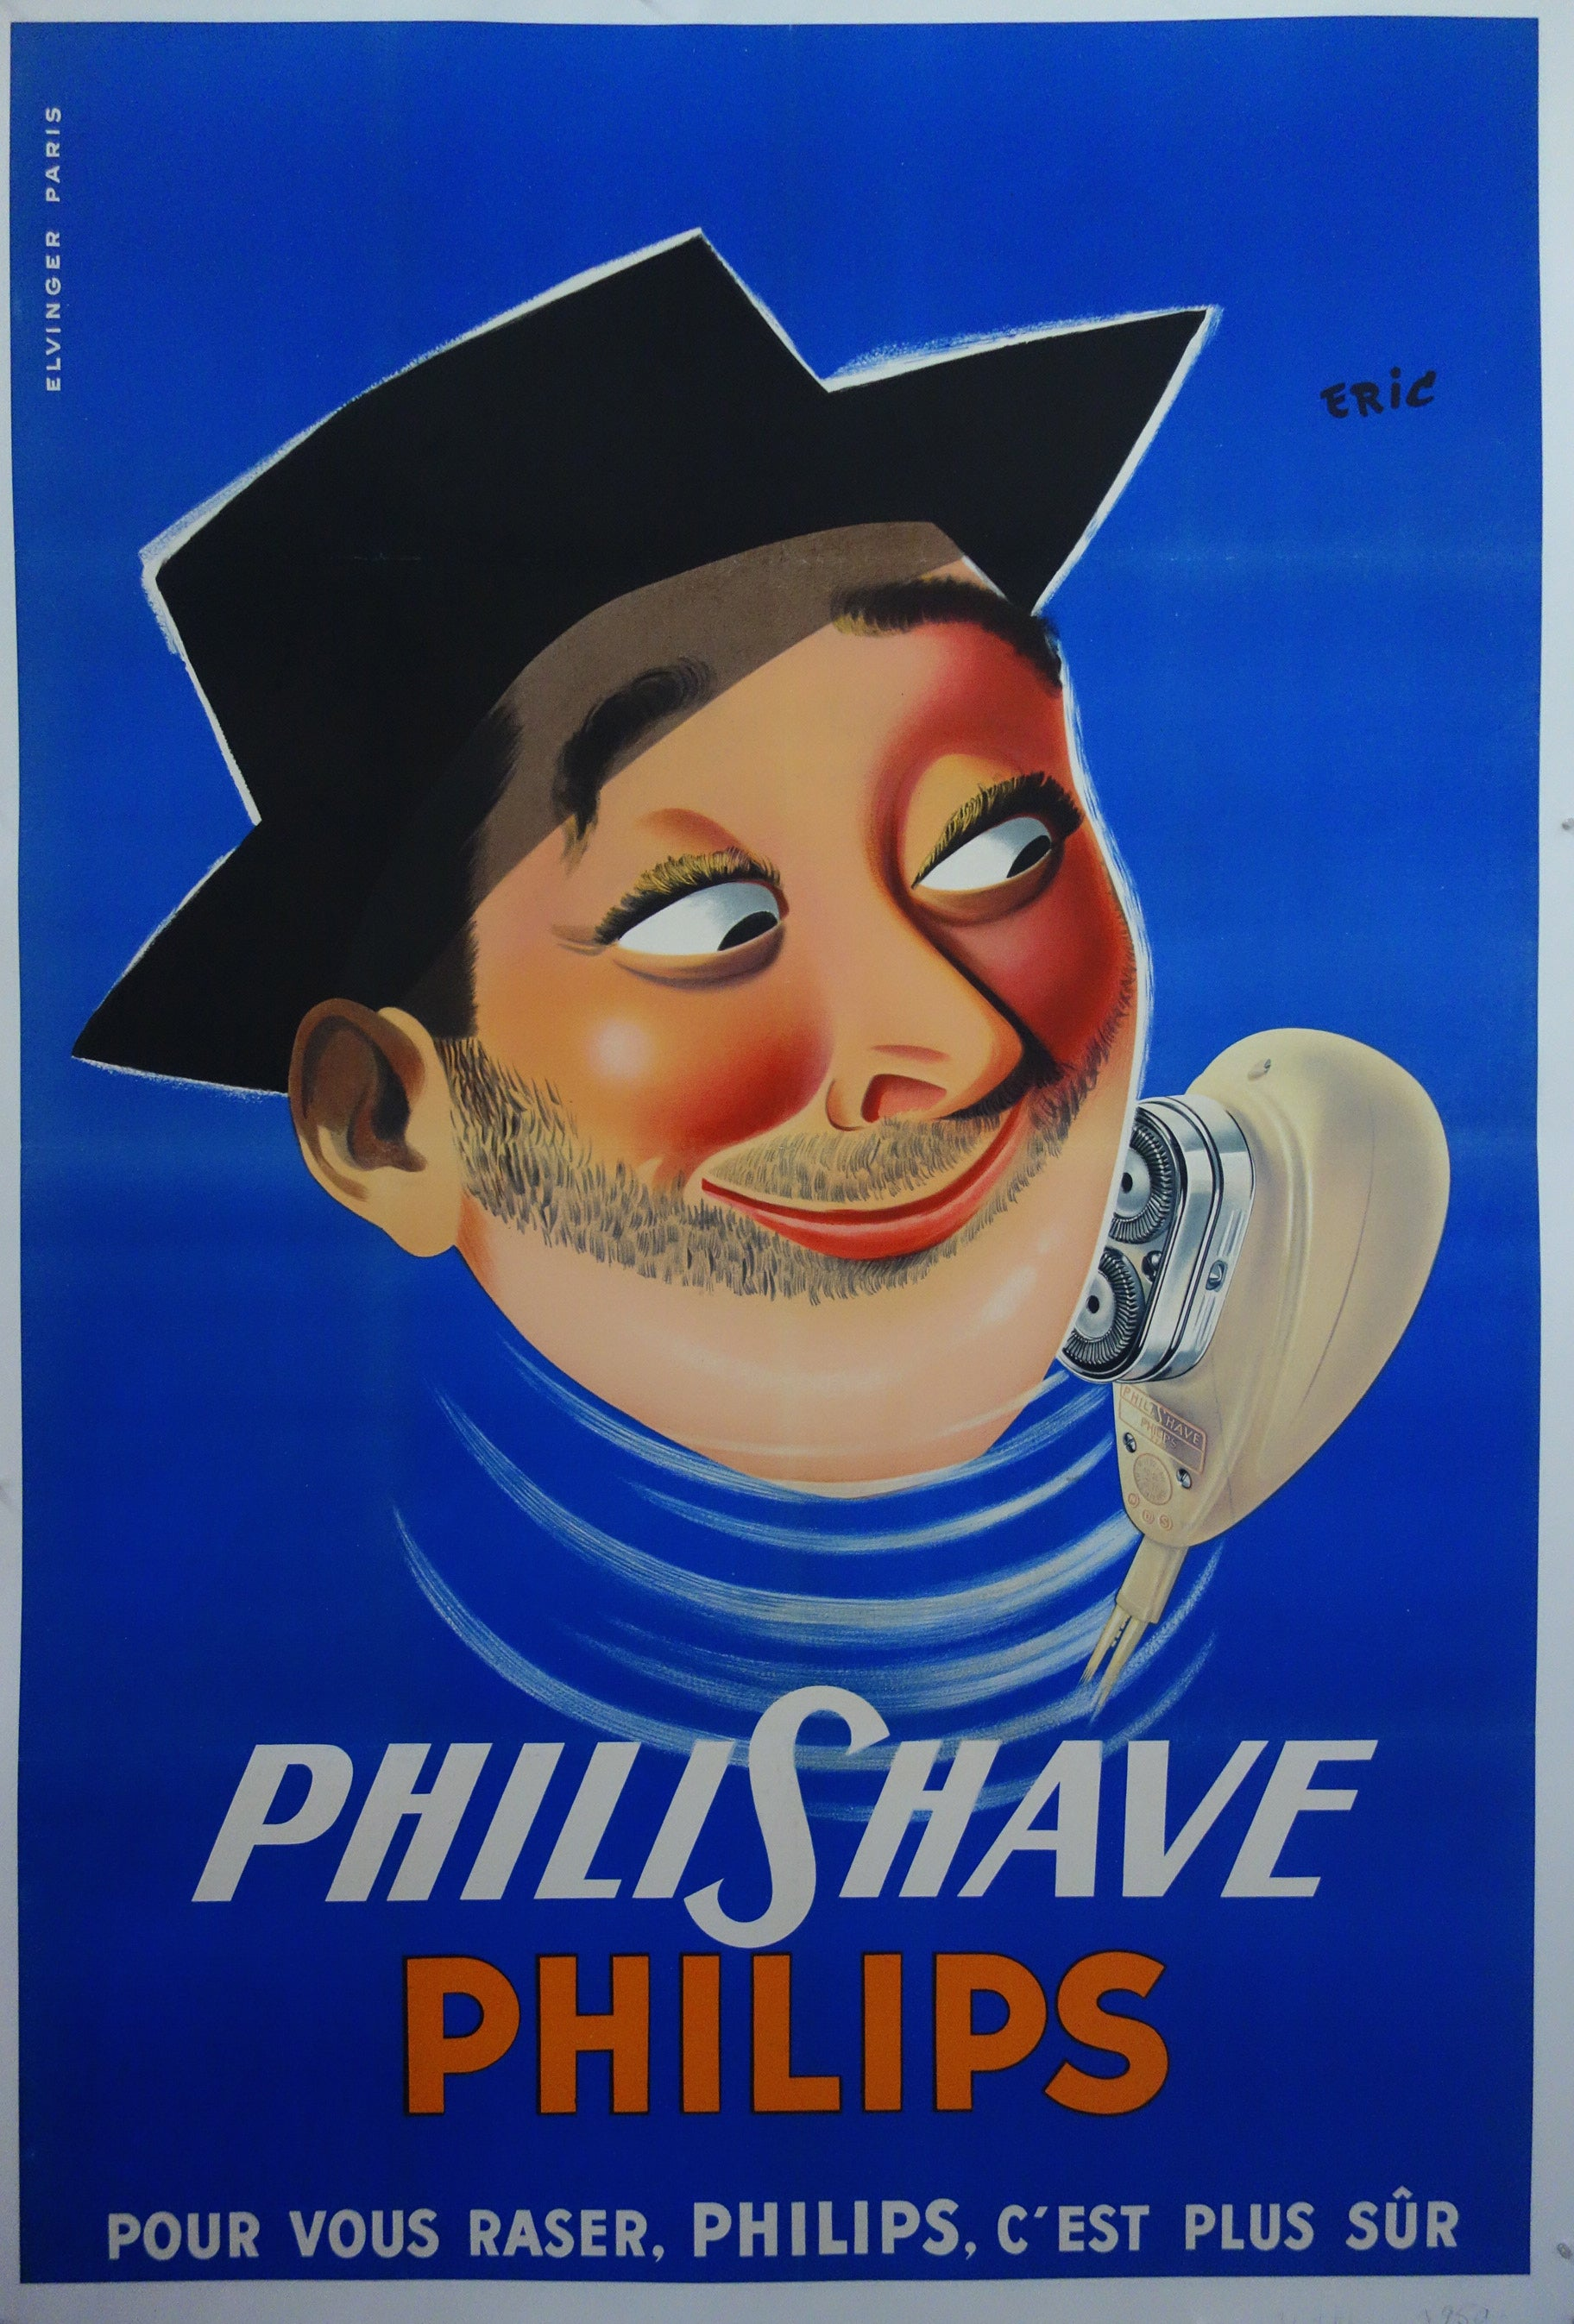 Philishave Philips